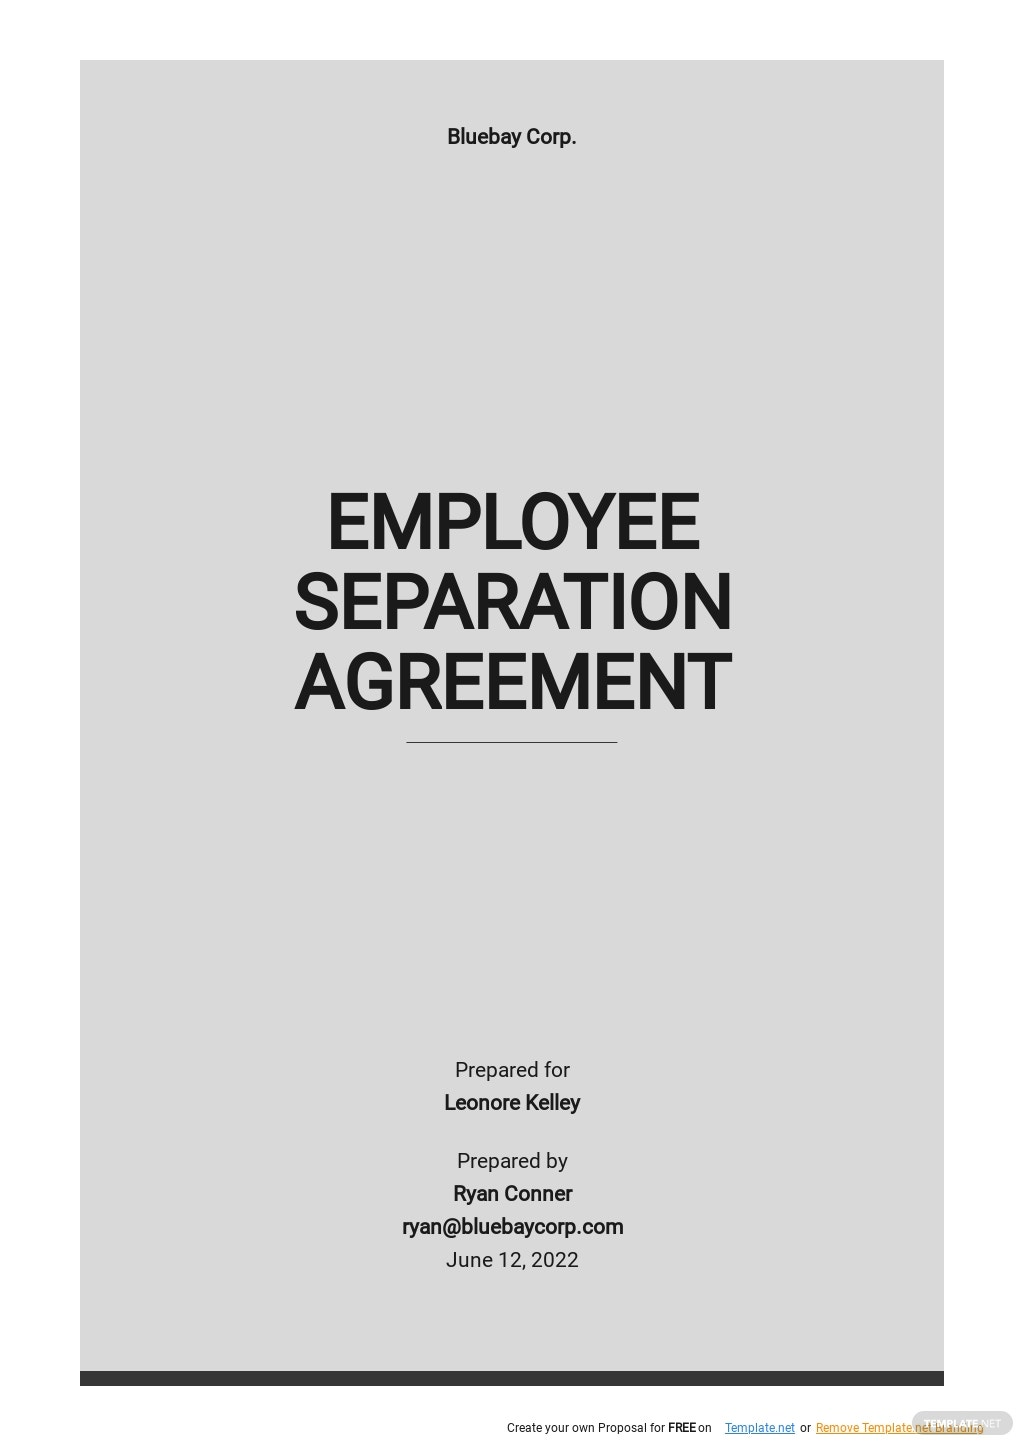 Simple Employee Separation Agreement Template.jpe